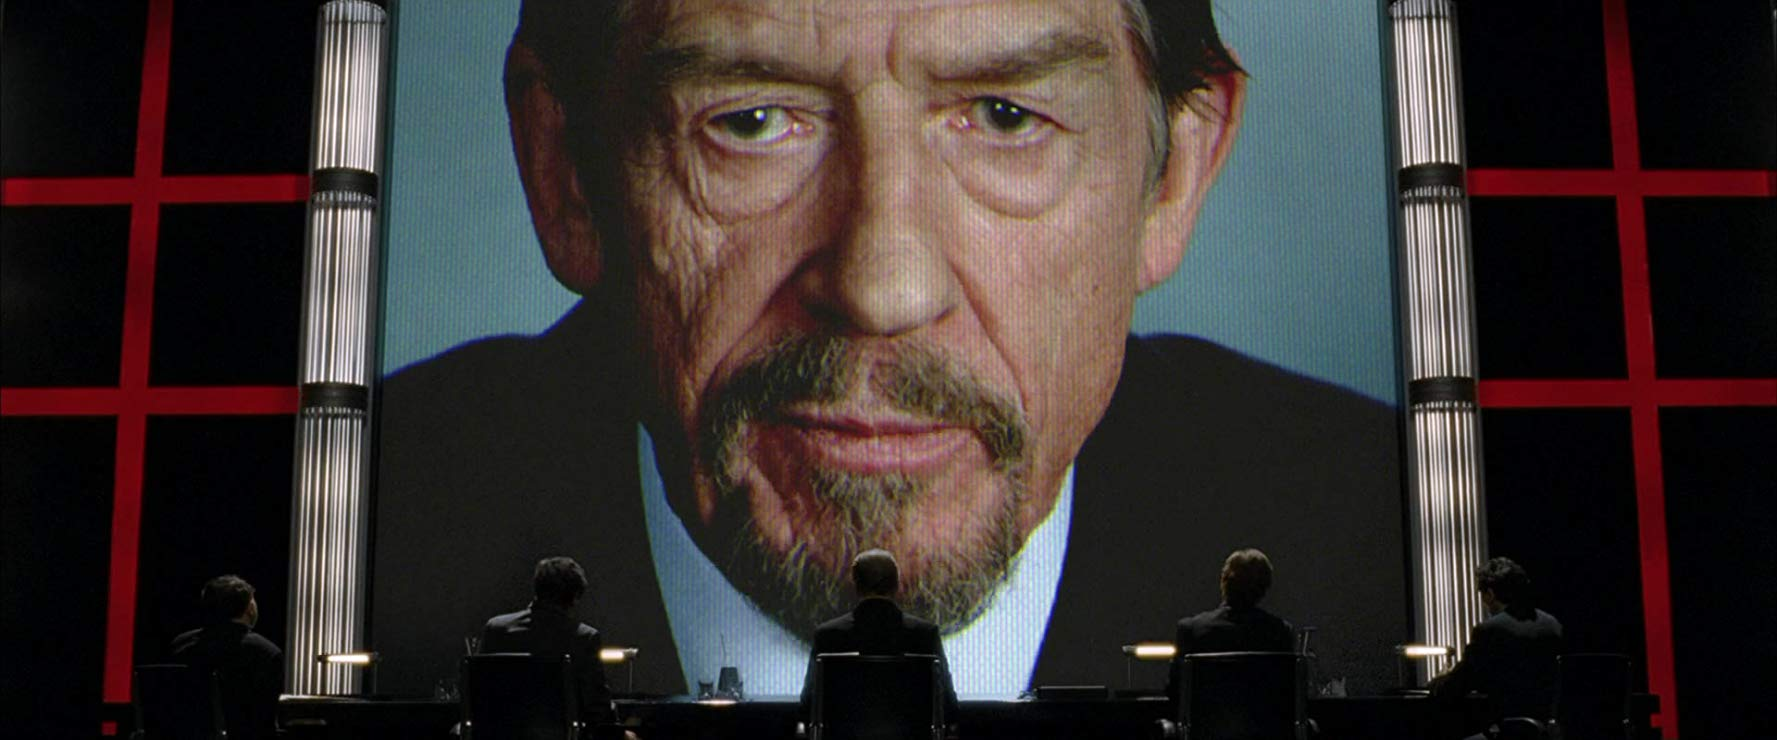 John Hurt as Adam Sutler, the dictator of England in V for Vendetta (2006)